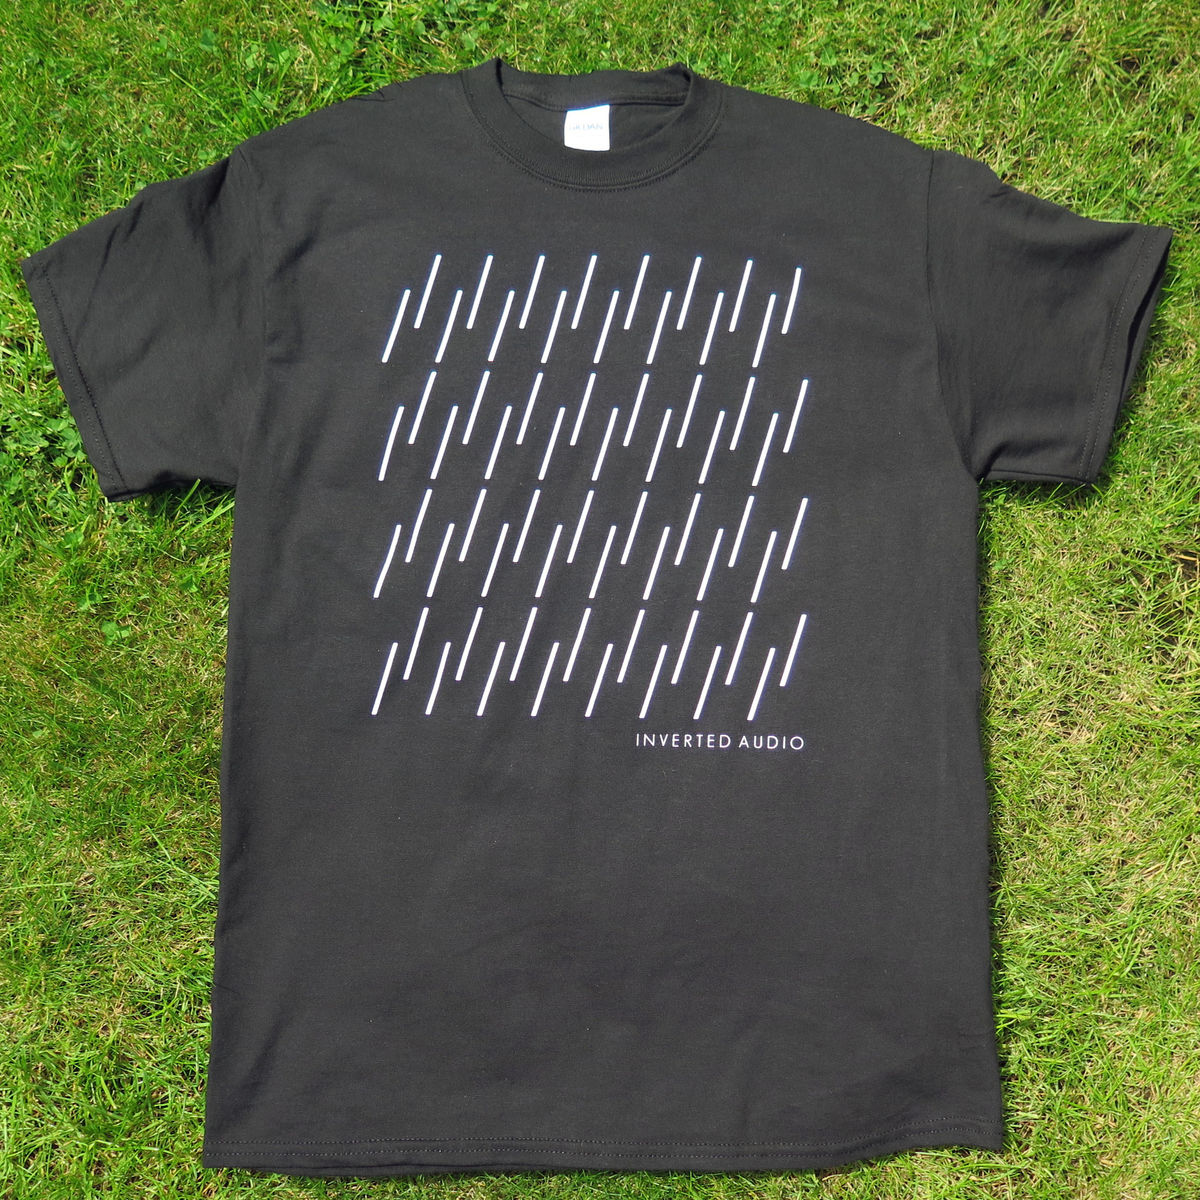 Inverted Audio - Black T-Shirt - product images  of